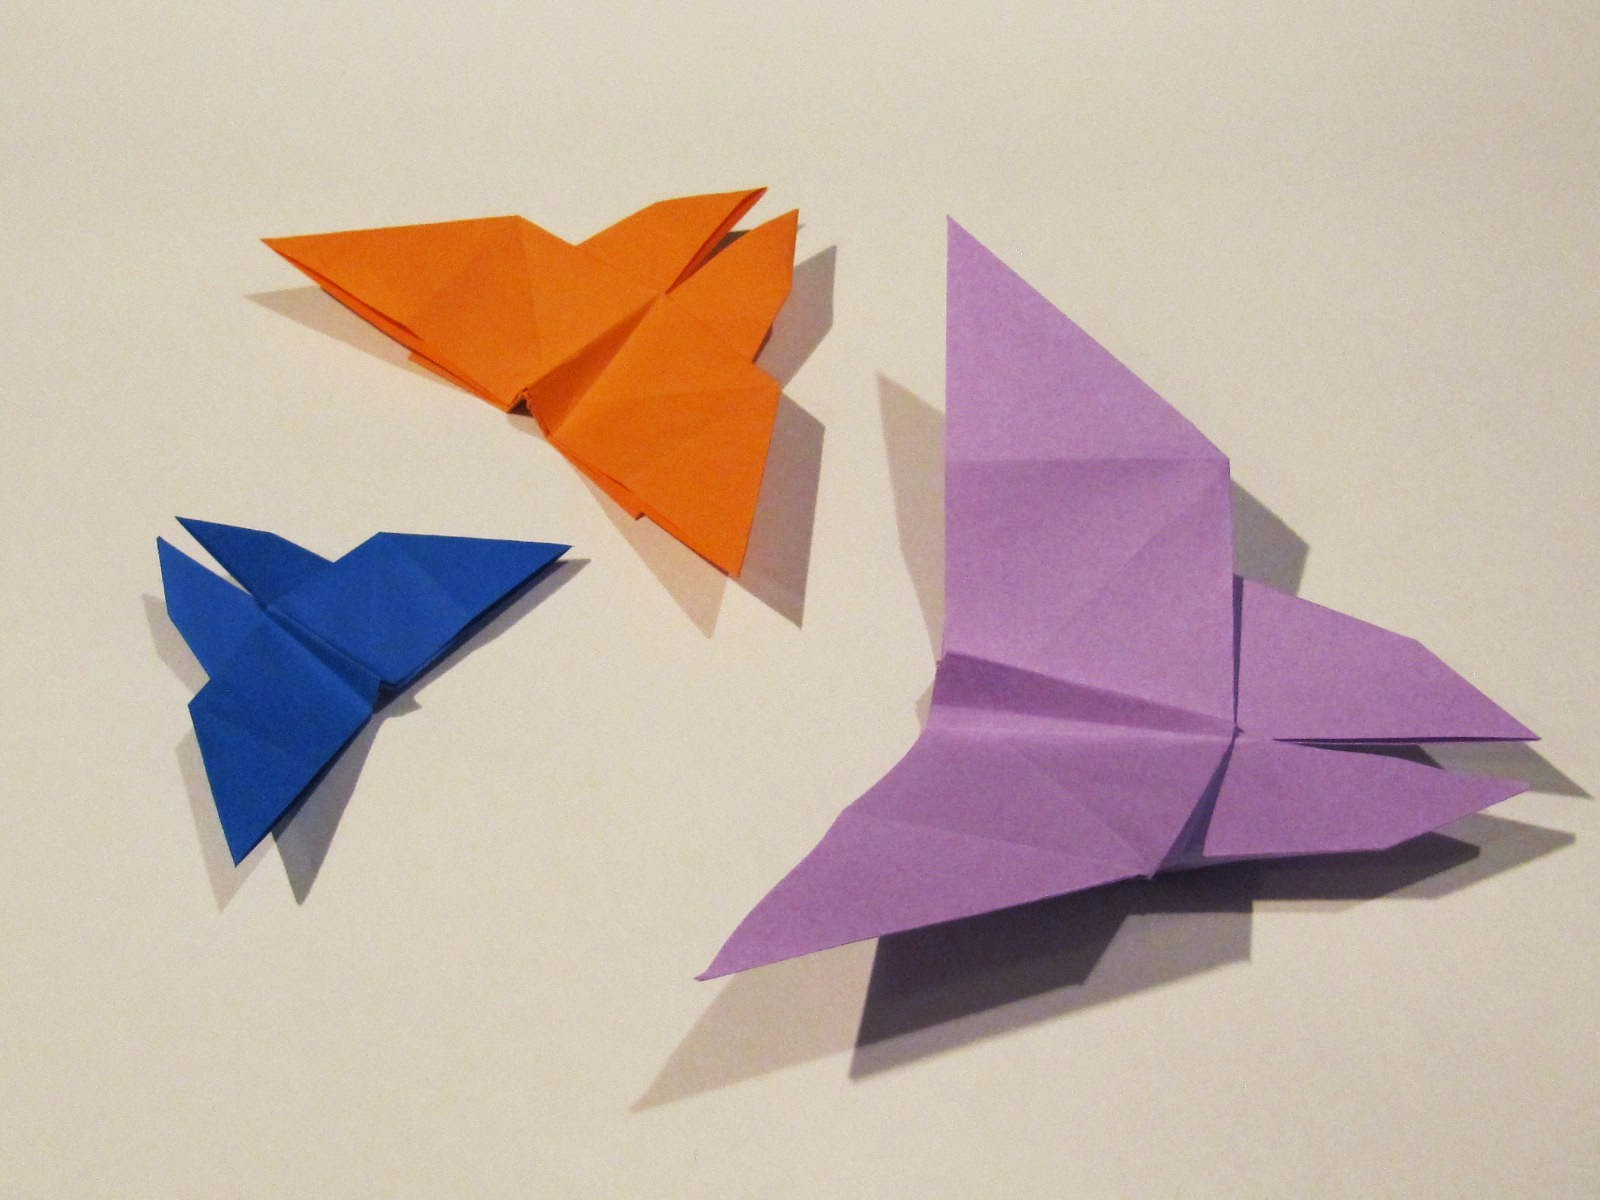 Origami Easy Butterfly - Tutorial - How to make an easy origami butterfly